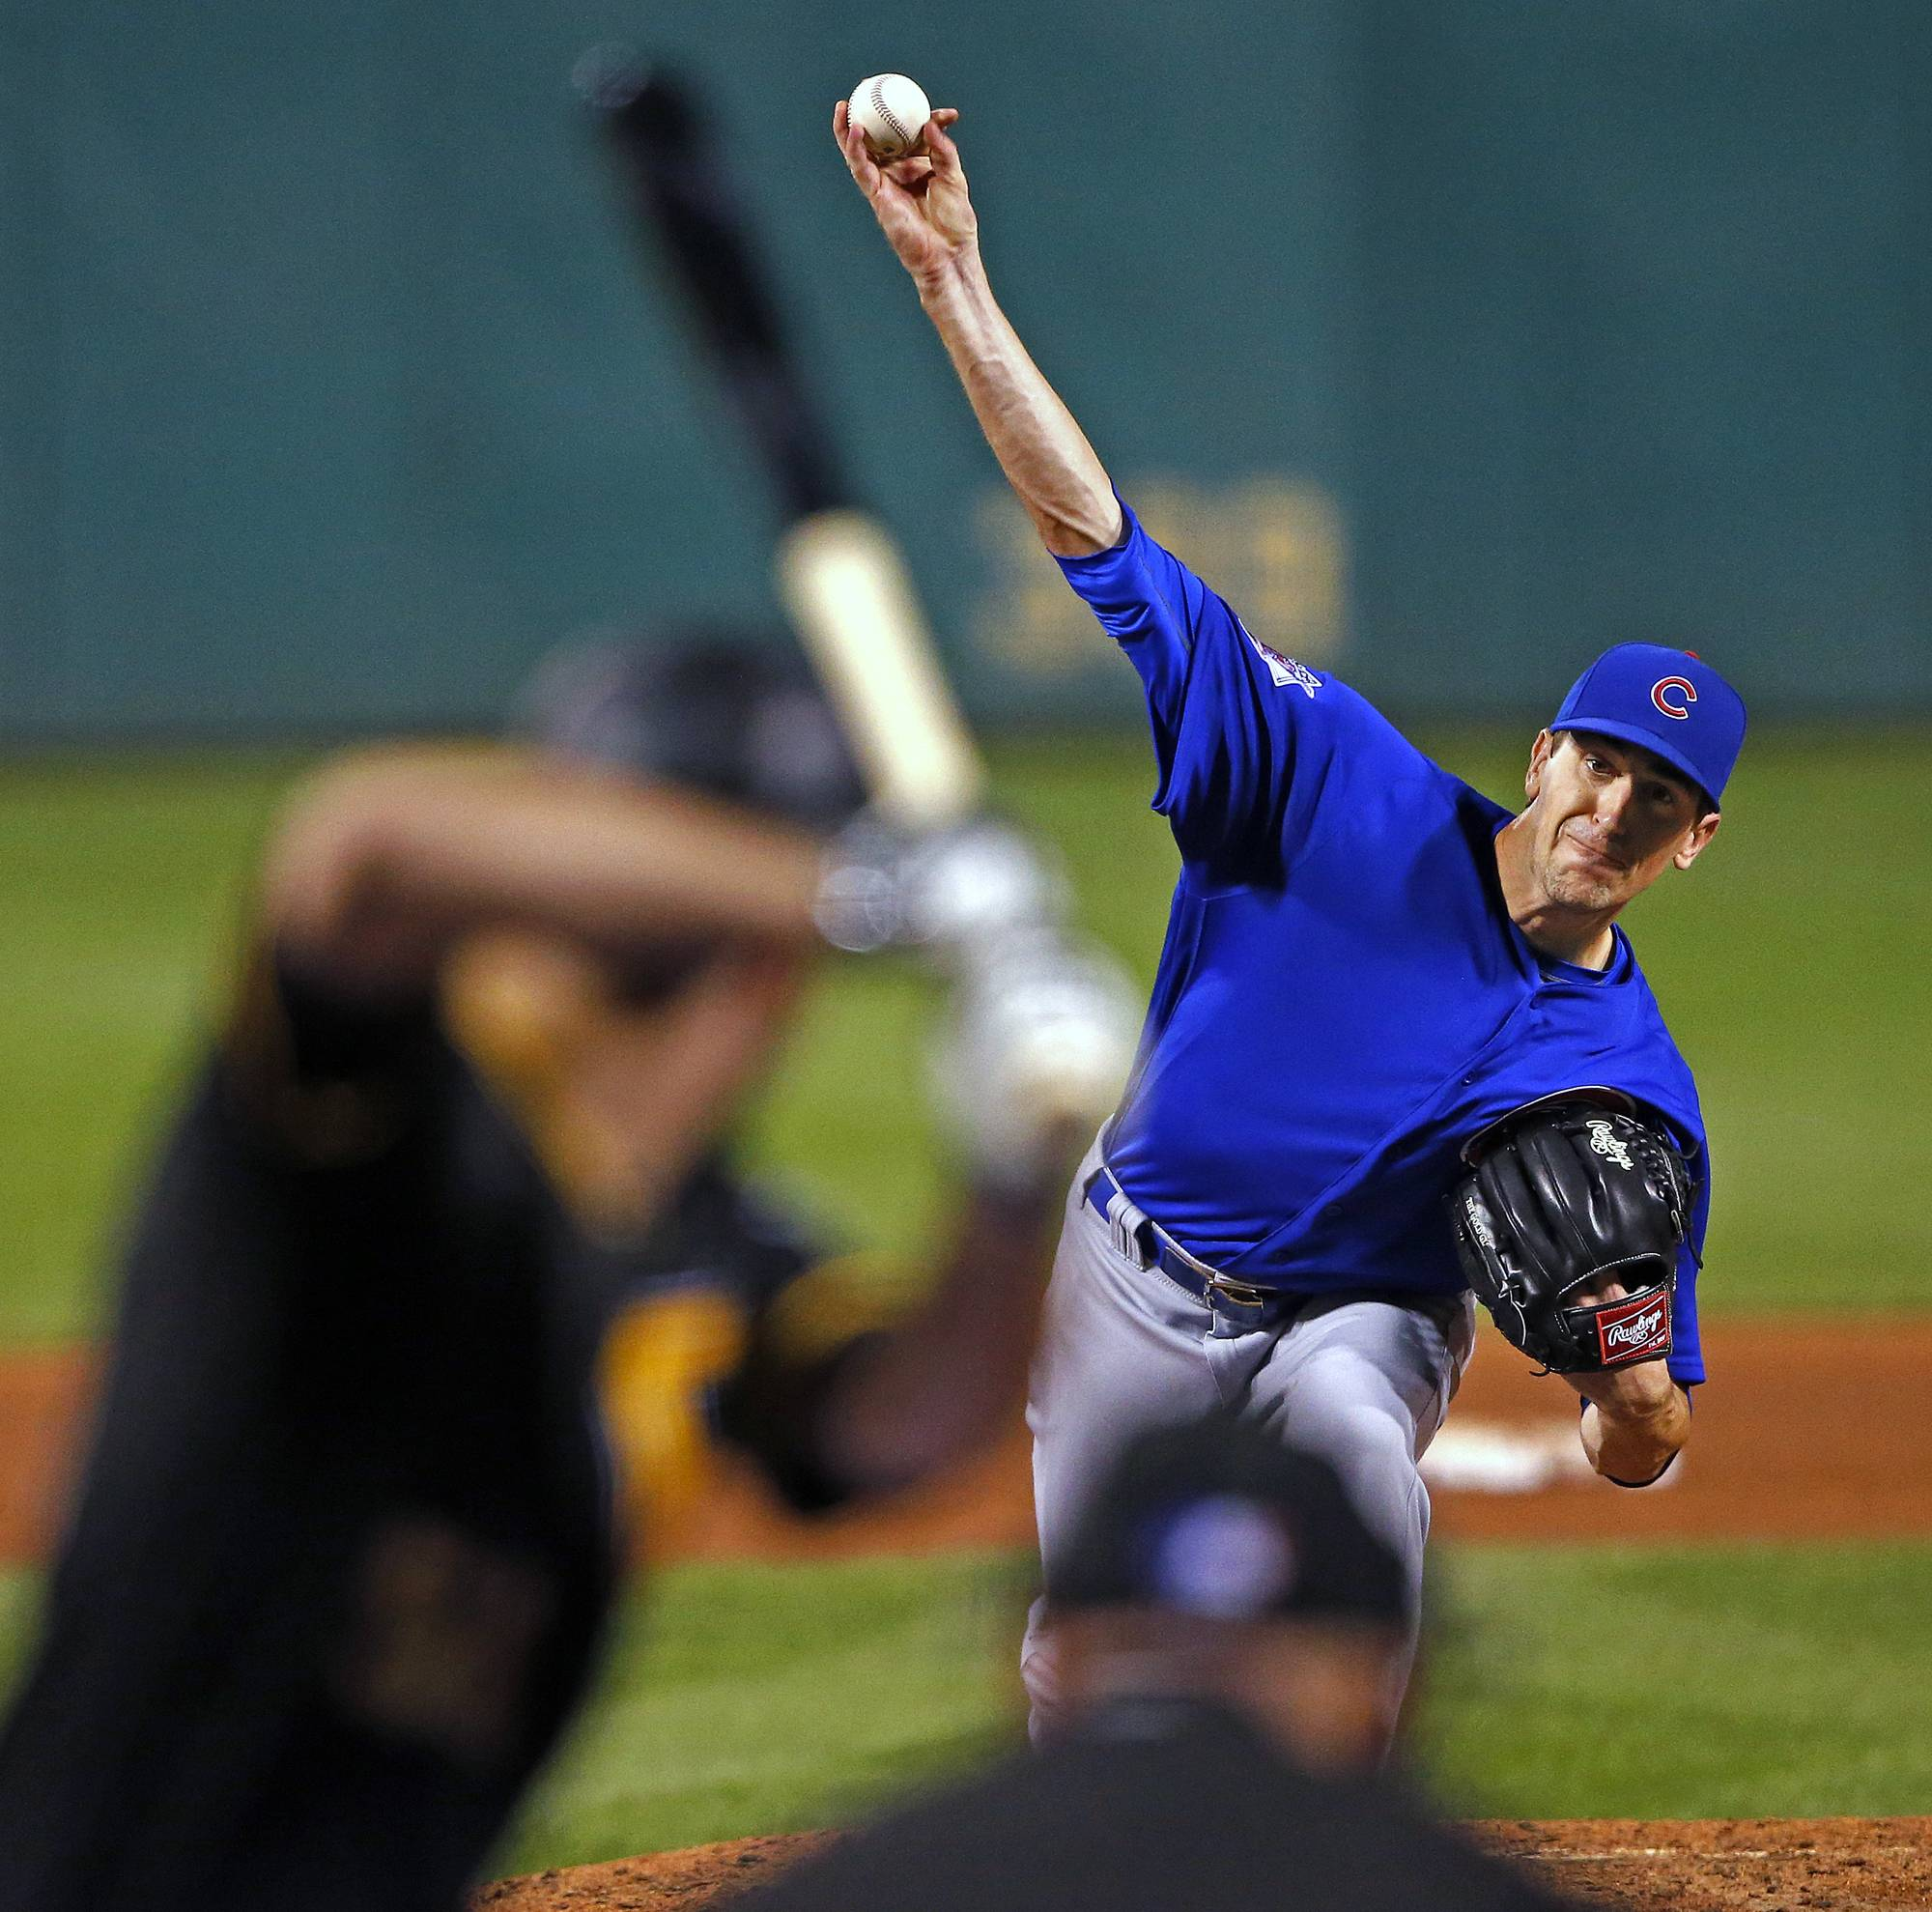 Chicago Cubs hit century mark in wins